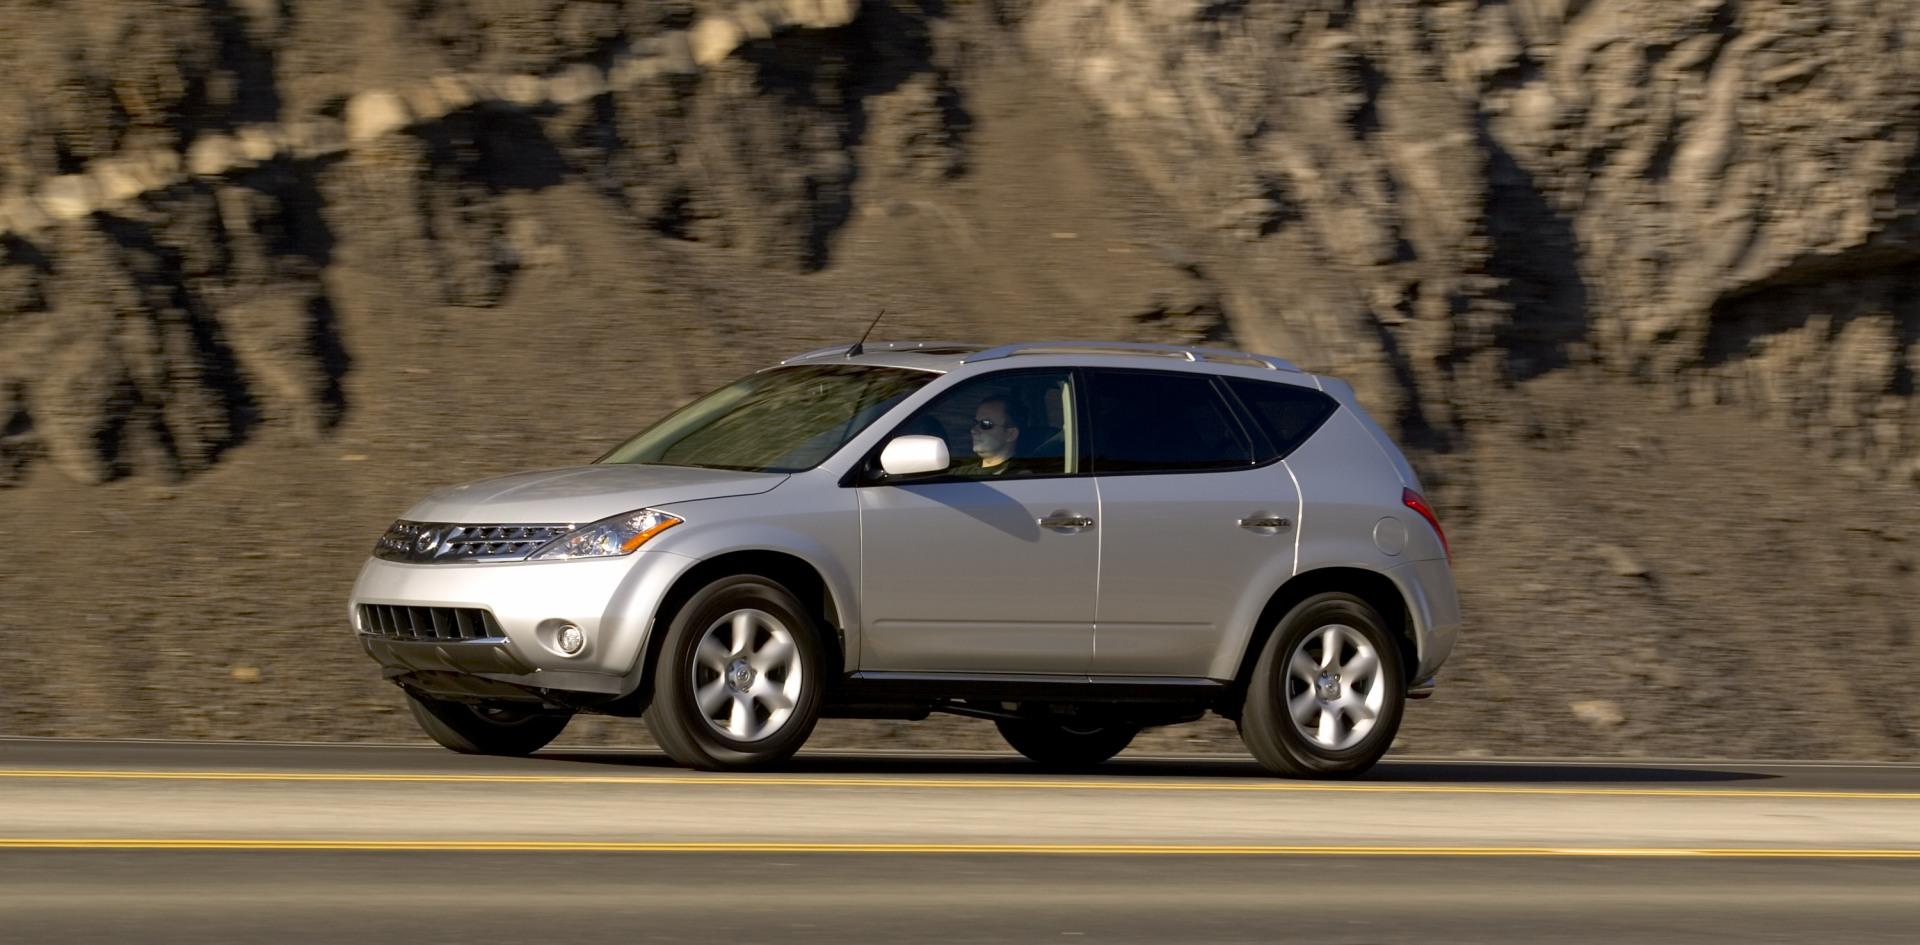 2007 nissan murano technical specifications and data engine 2007 nissan murano technical specifications and data engine dimensions and mechanical details conceptcarz vanachro Gallery